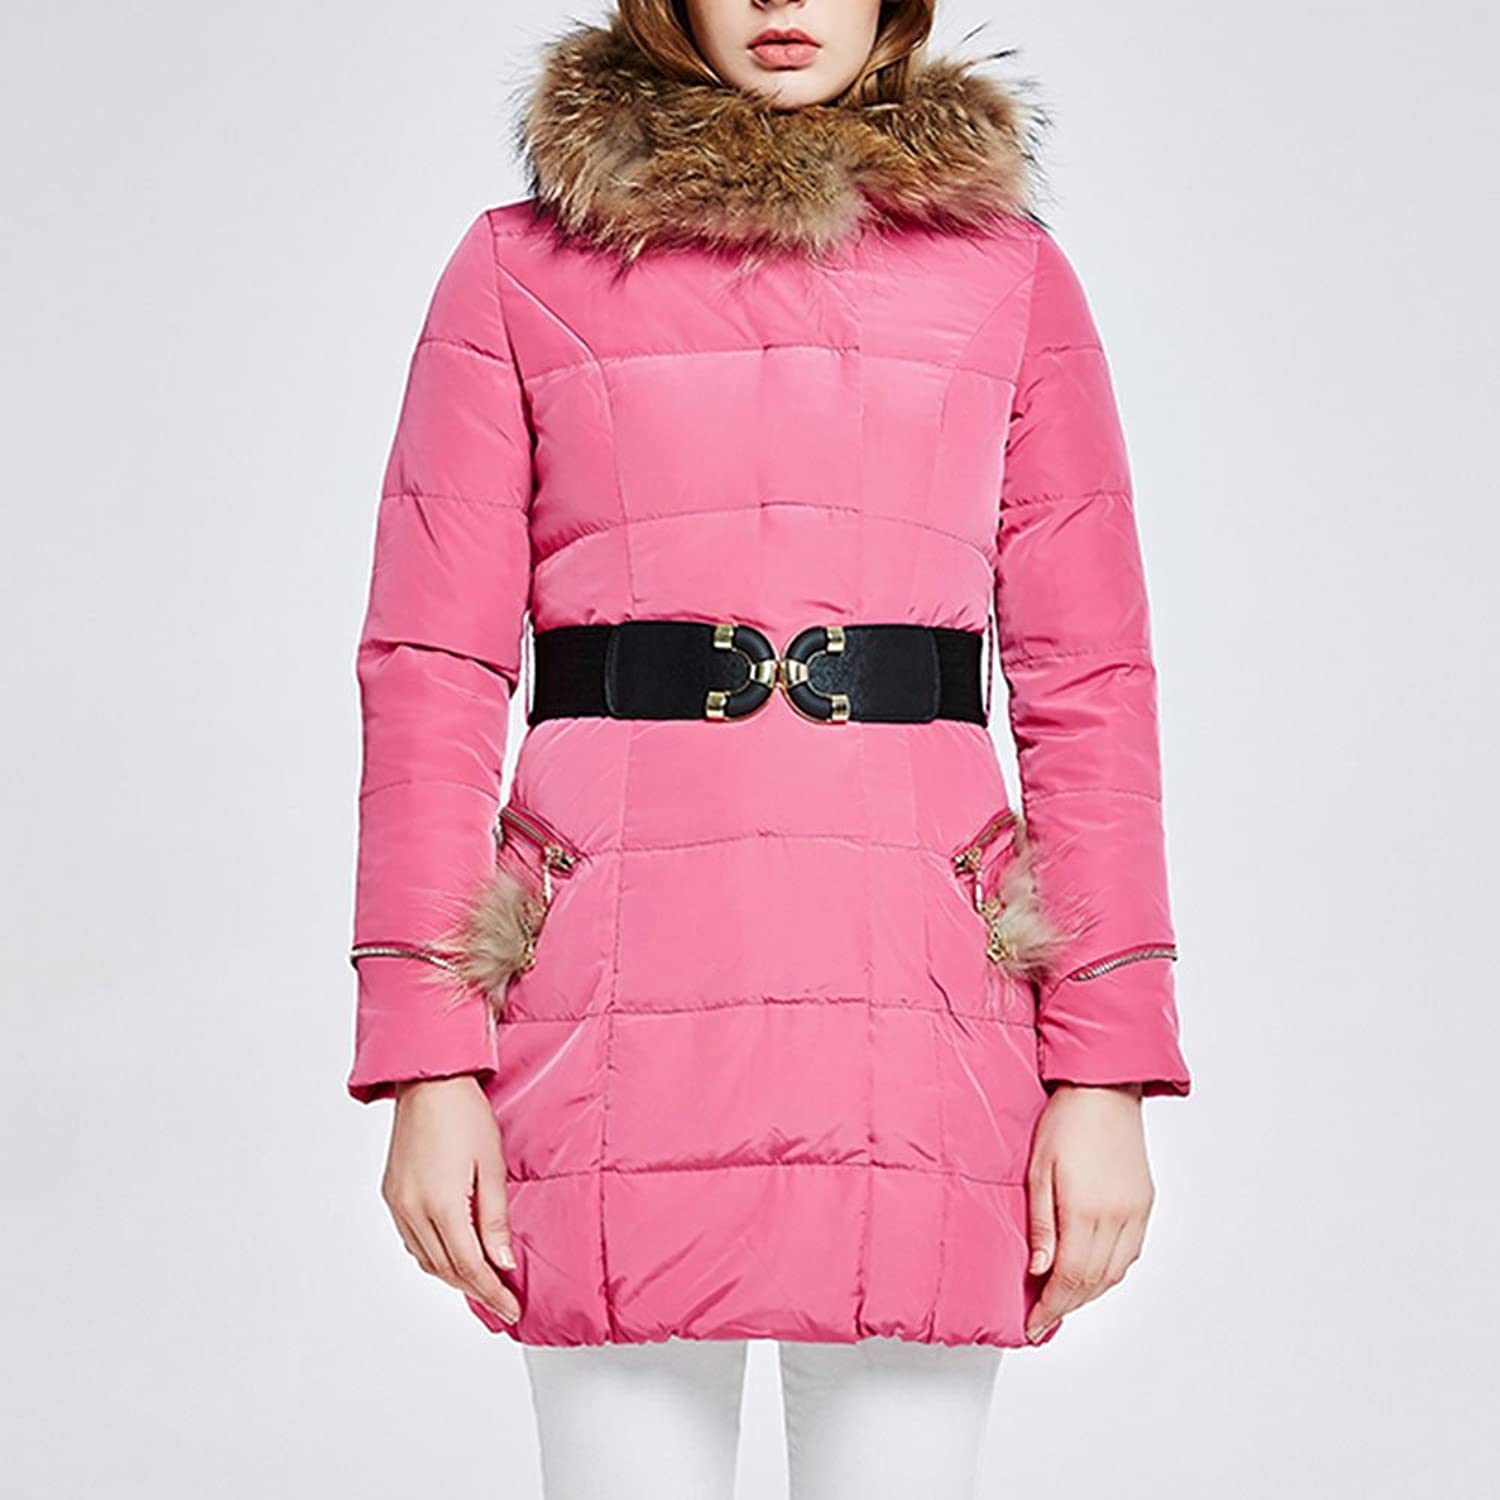 Down jacket QFFL Ms Autumn and winter hooded collar Long warm jacket 6 colors available Size optional jacket